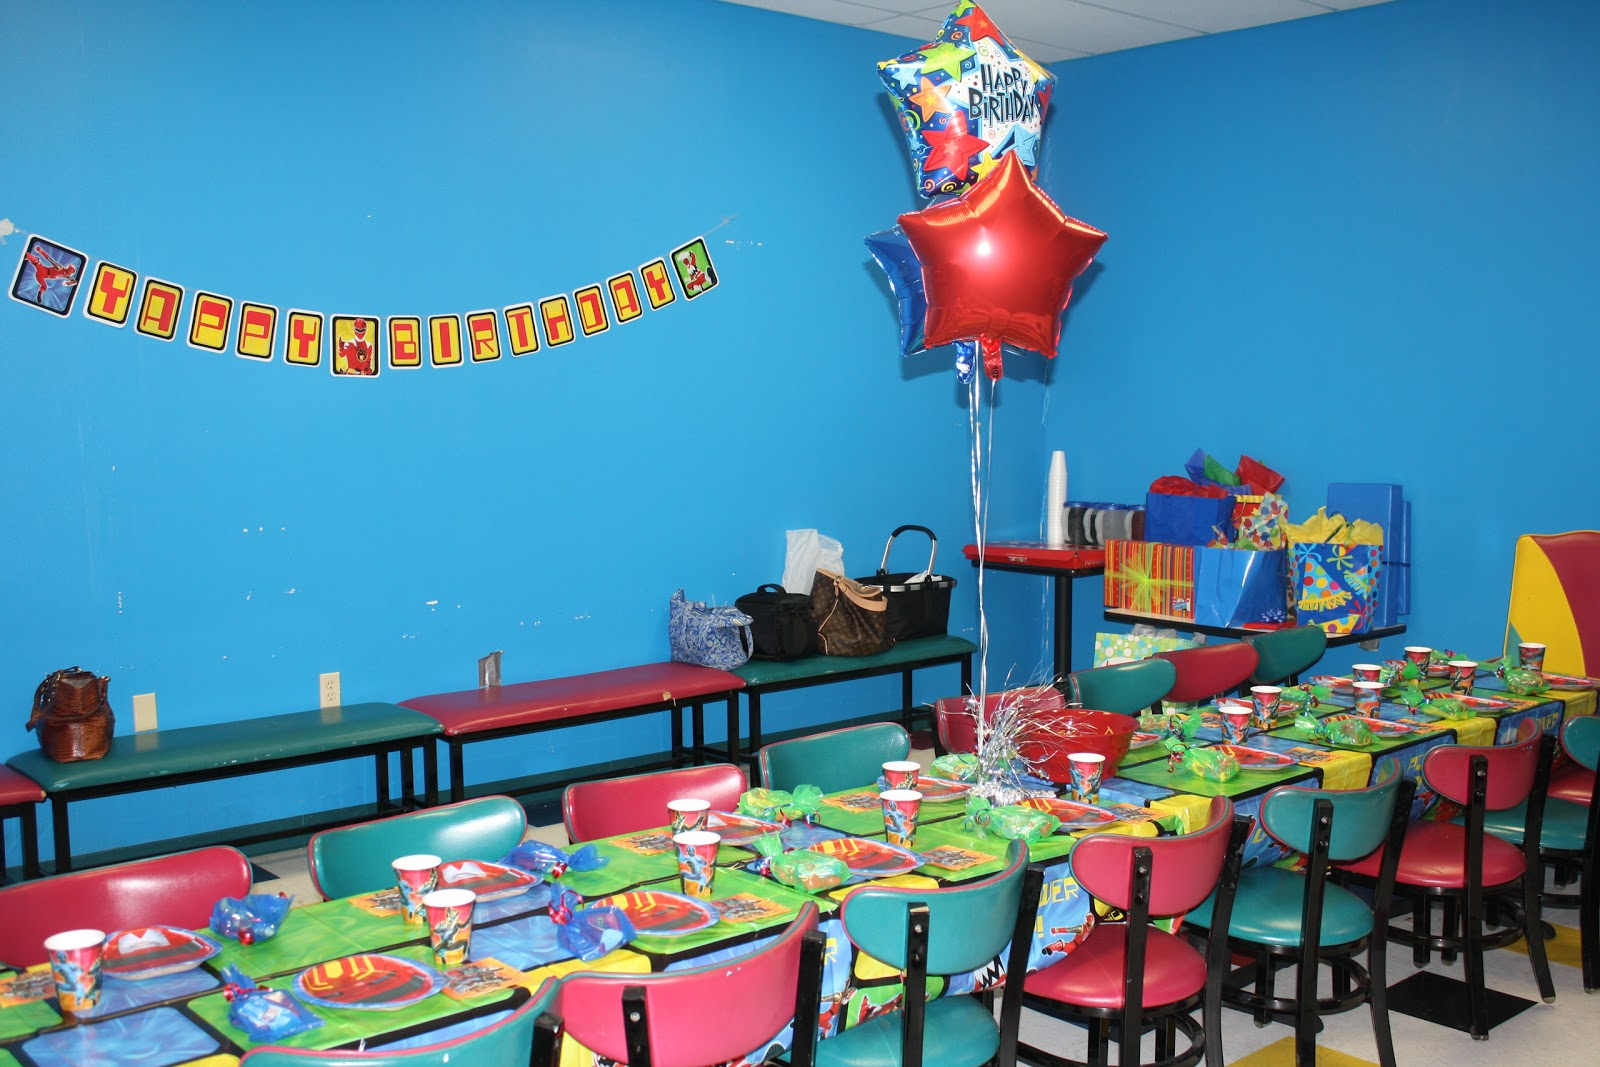 Power Rangers Birthday Party Ideas for Games and